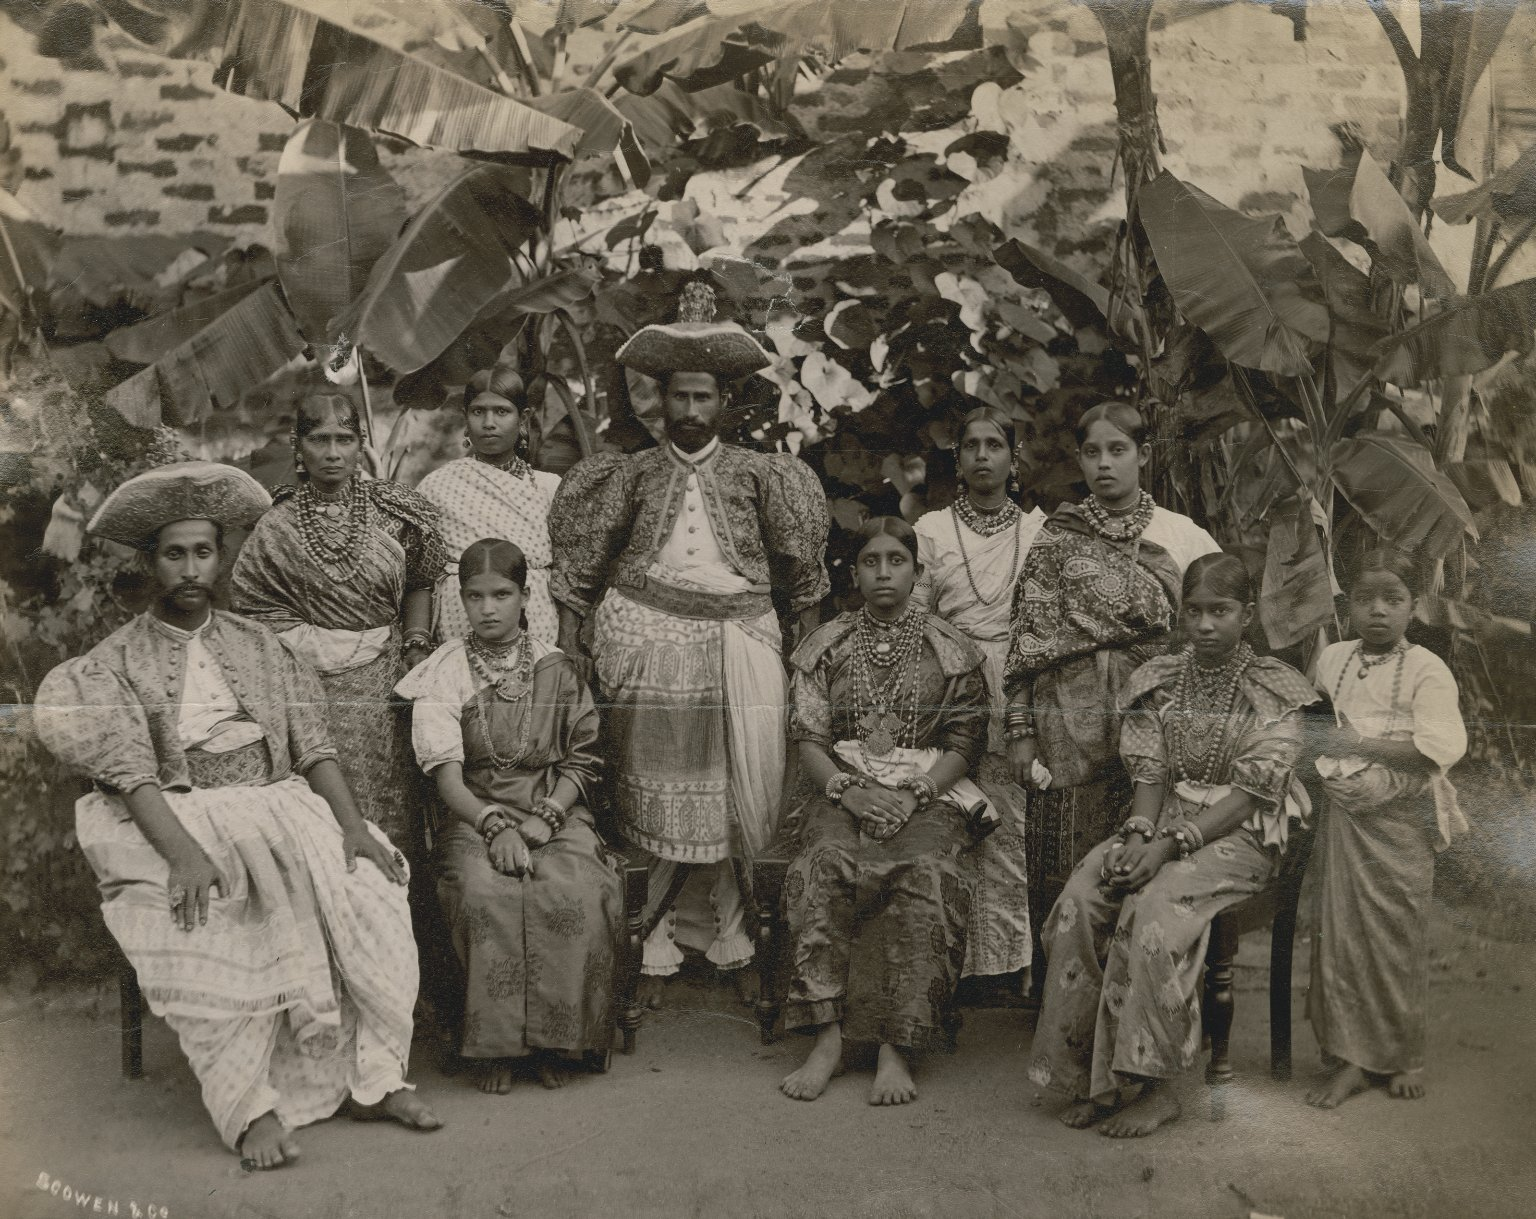 Group portrait with some seated figures: 2 men, 8 women & children against a backdrop of tropical foliage.